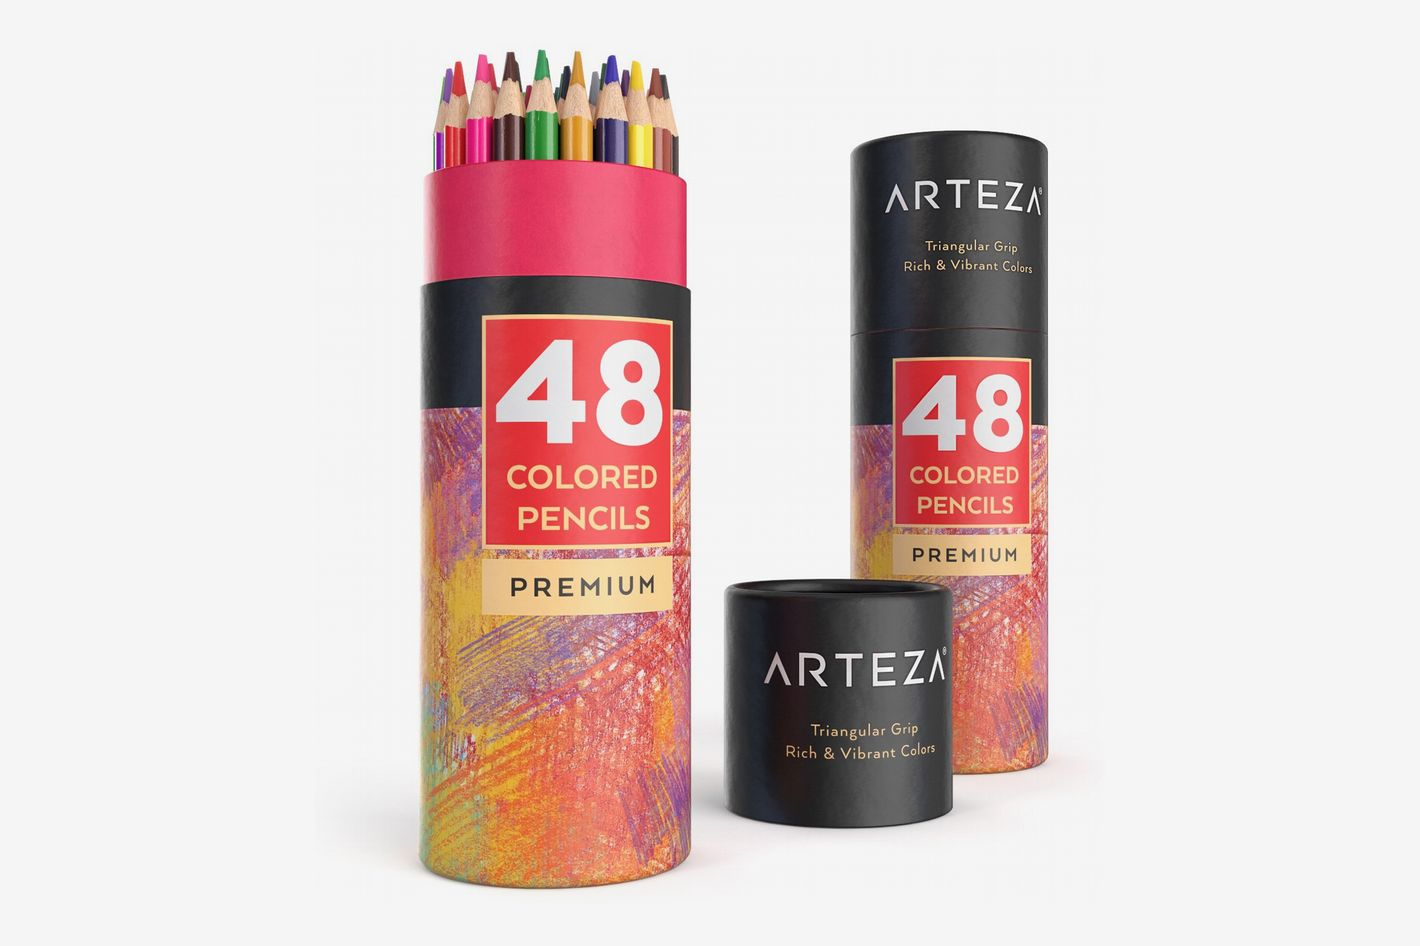 17 Best Colored Pencils 2019